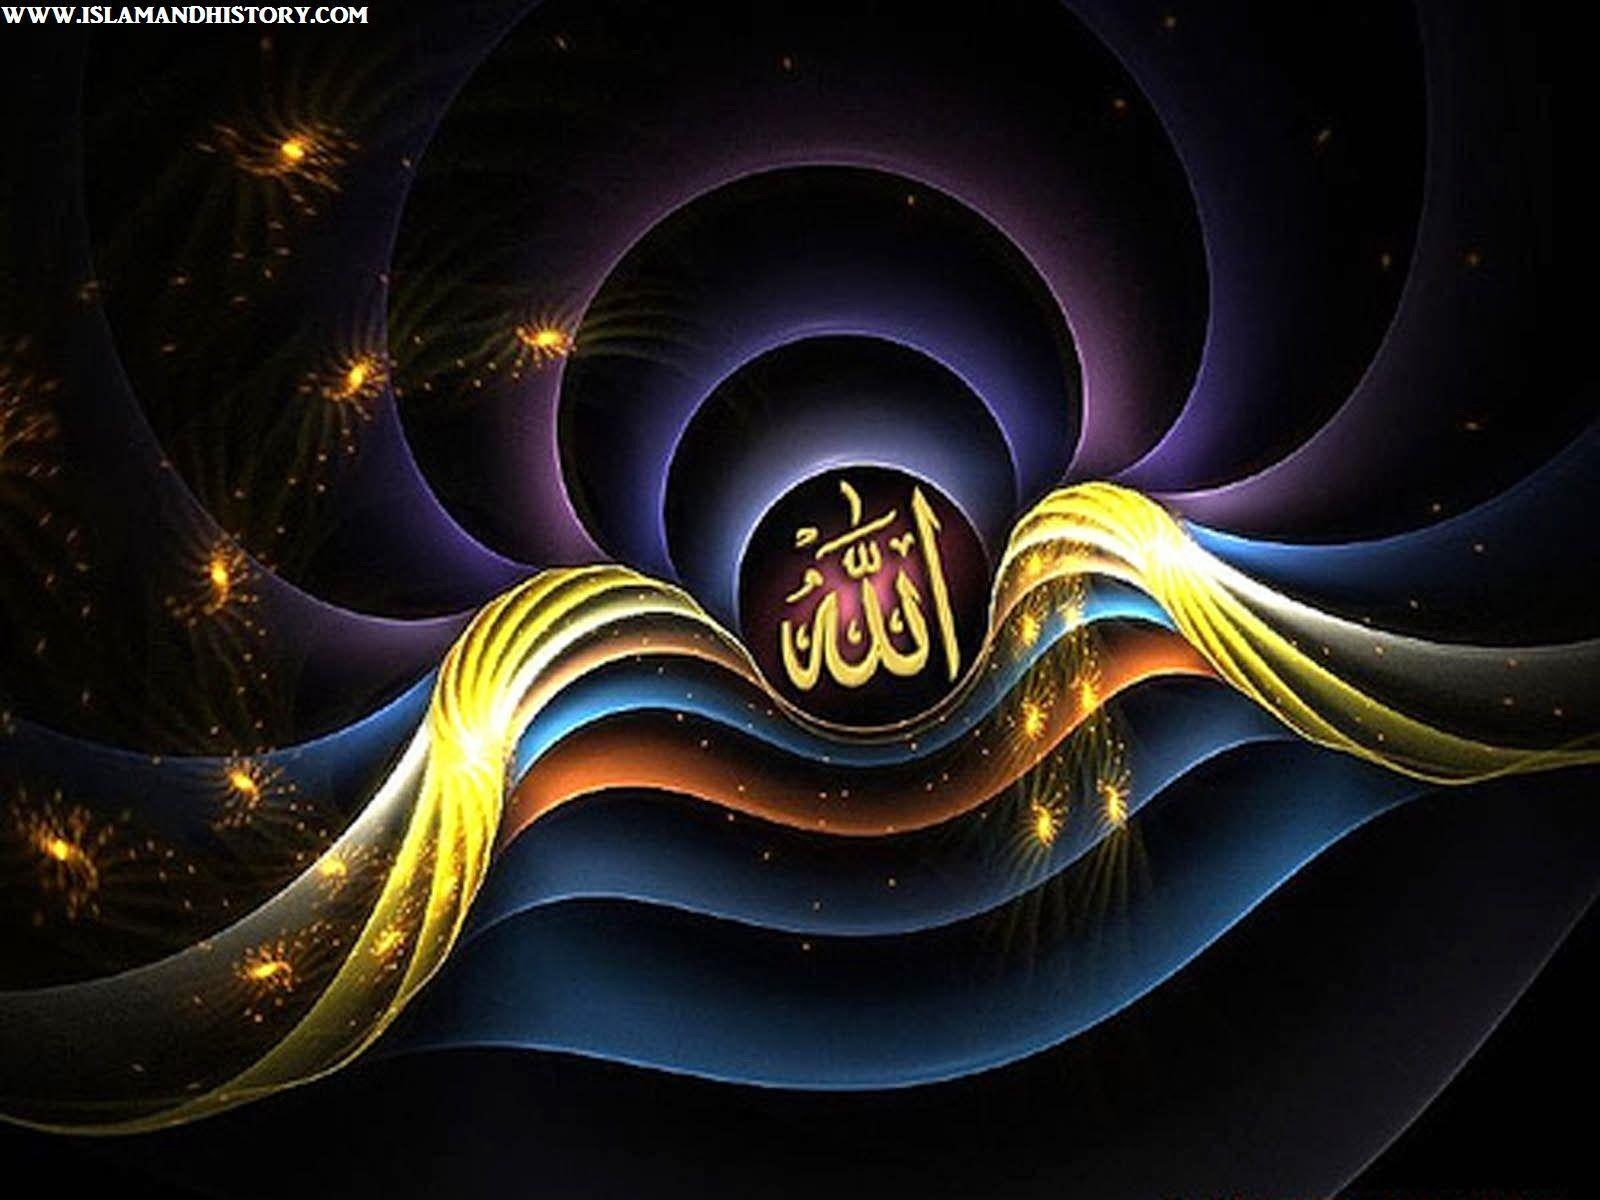 Allah Name Wallpapers 2015 1600x1200